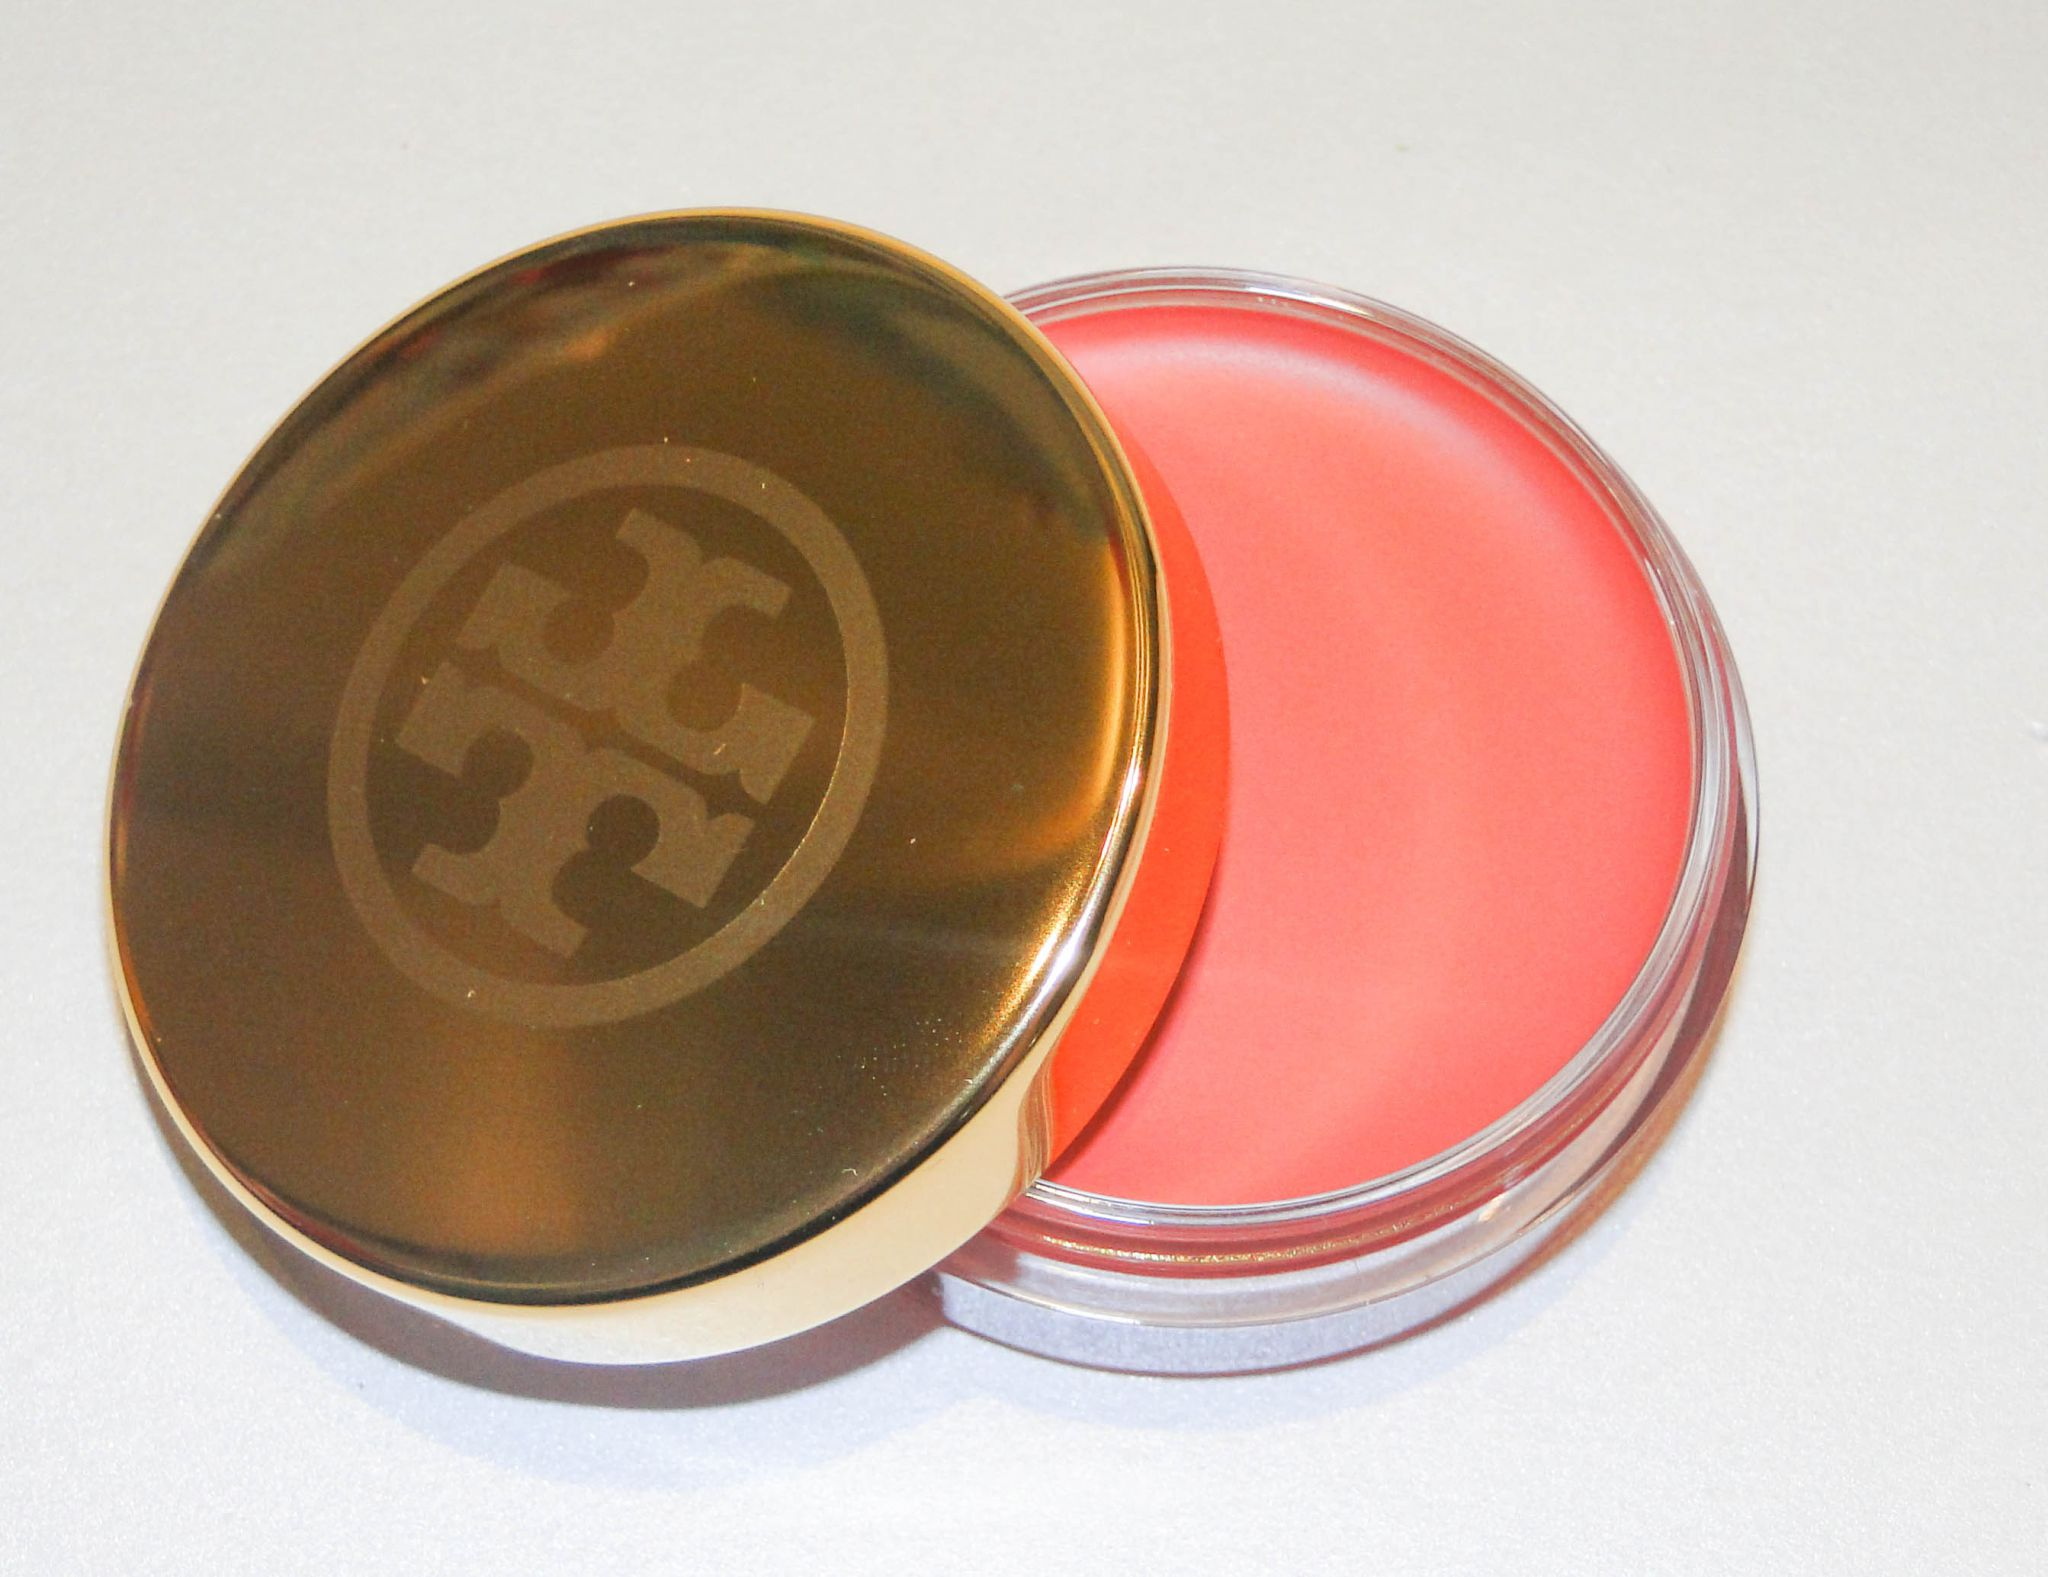 Tory Burch Cat's Meow Lip and Cheek Tint-3